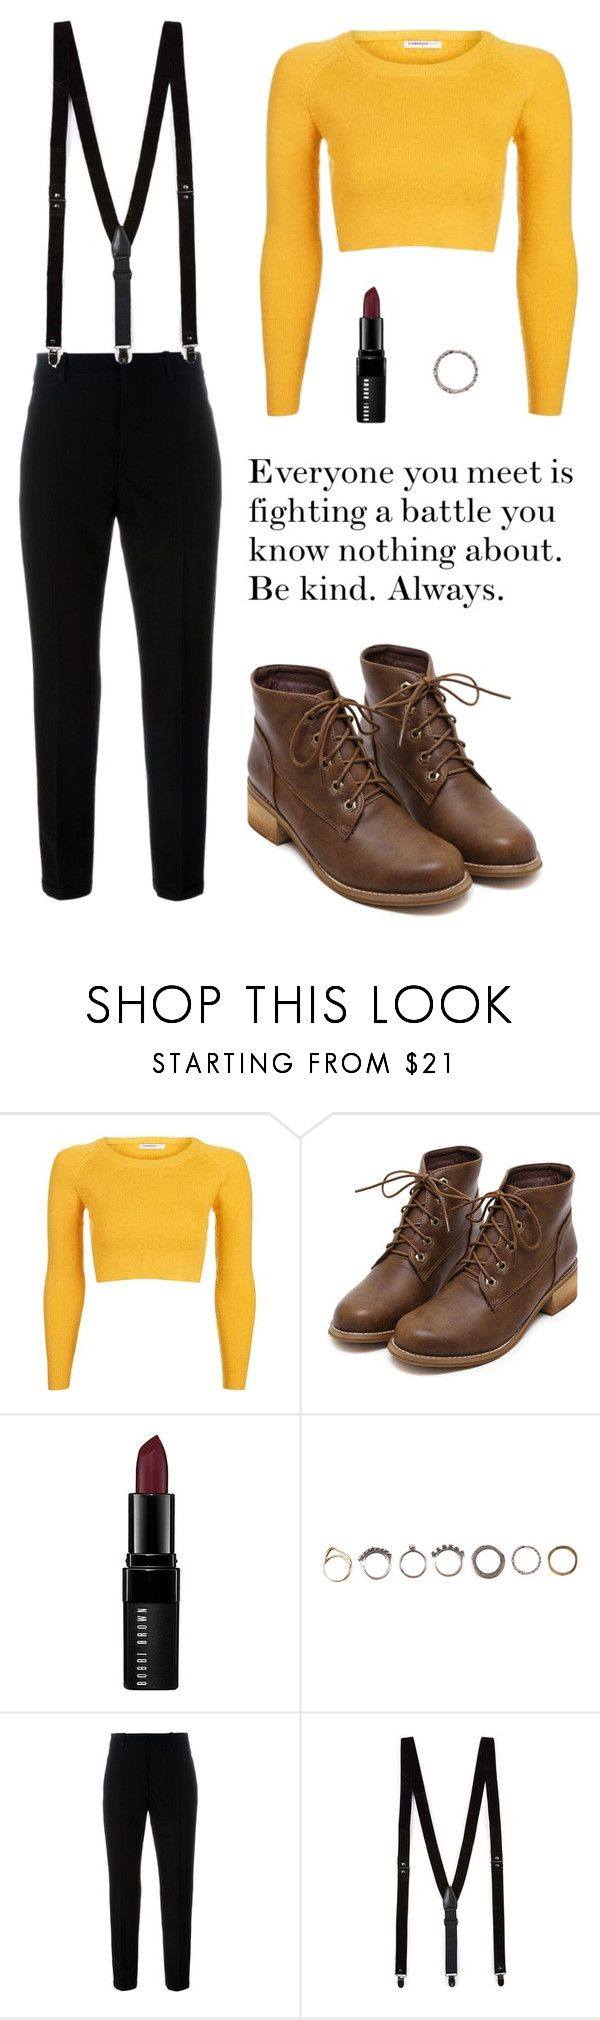 """#76"" by howl-owl on Polyvore featuring mode, Topshop, Bobbi Brown Cosmetics, Iosselliani, Marni, Topman, noora, skam, noorasaetre et skamnoora"